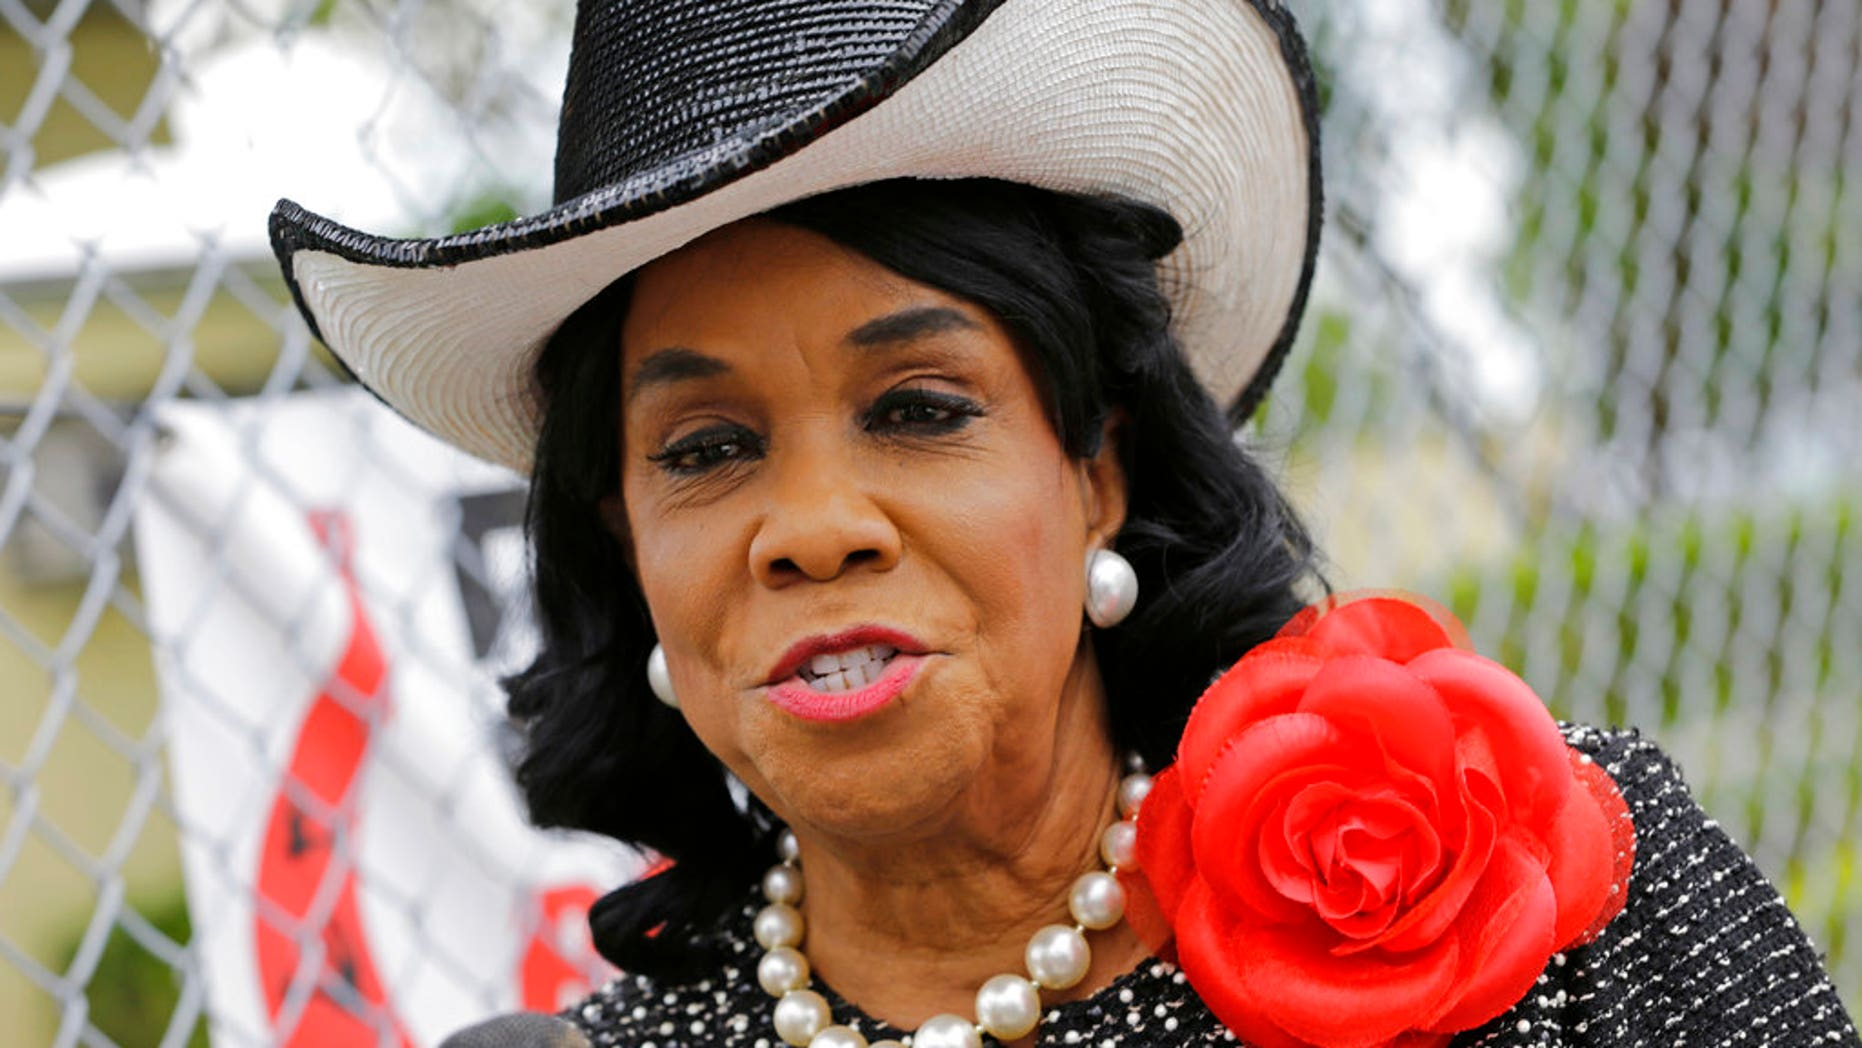 Rep. Frederica Wilson won't honor President Trump with her presence at the State of the Union address.